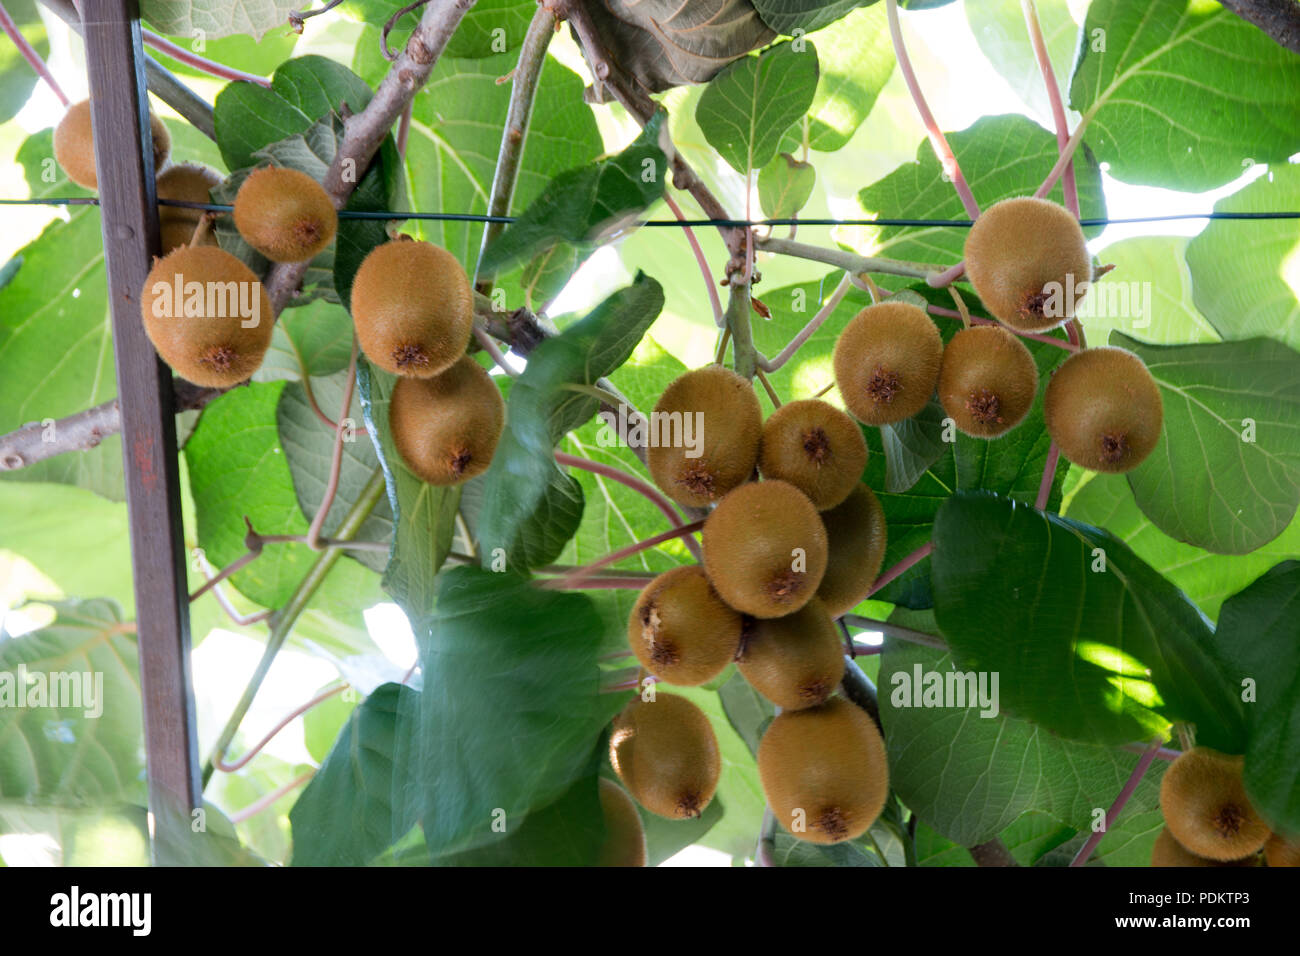 Green kiwis ripen on a tree. Kiwis on a branch. Healthy. Rich in vitamins. - Stock Image